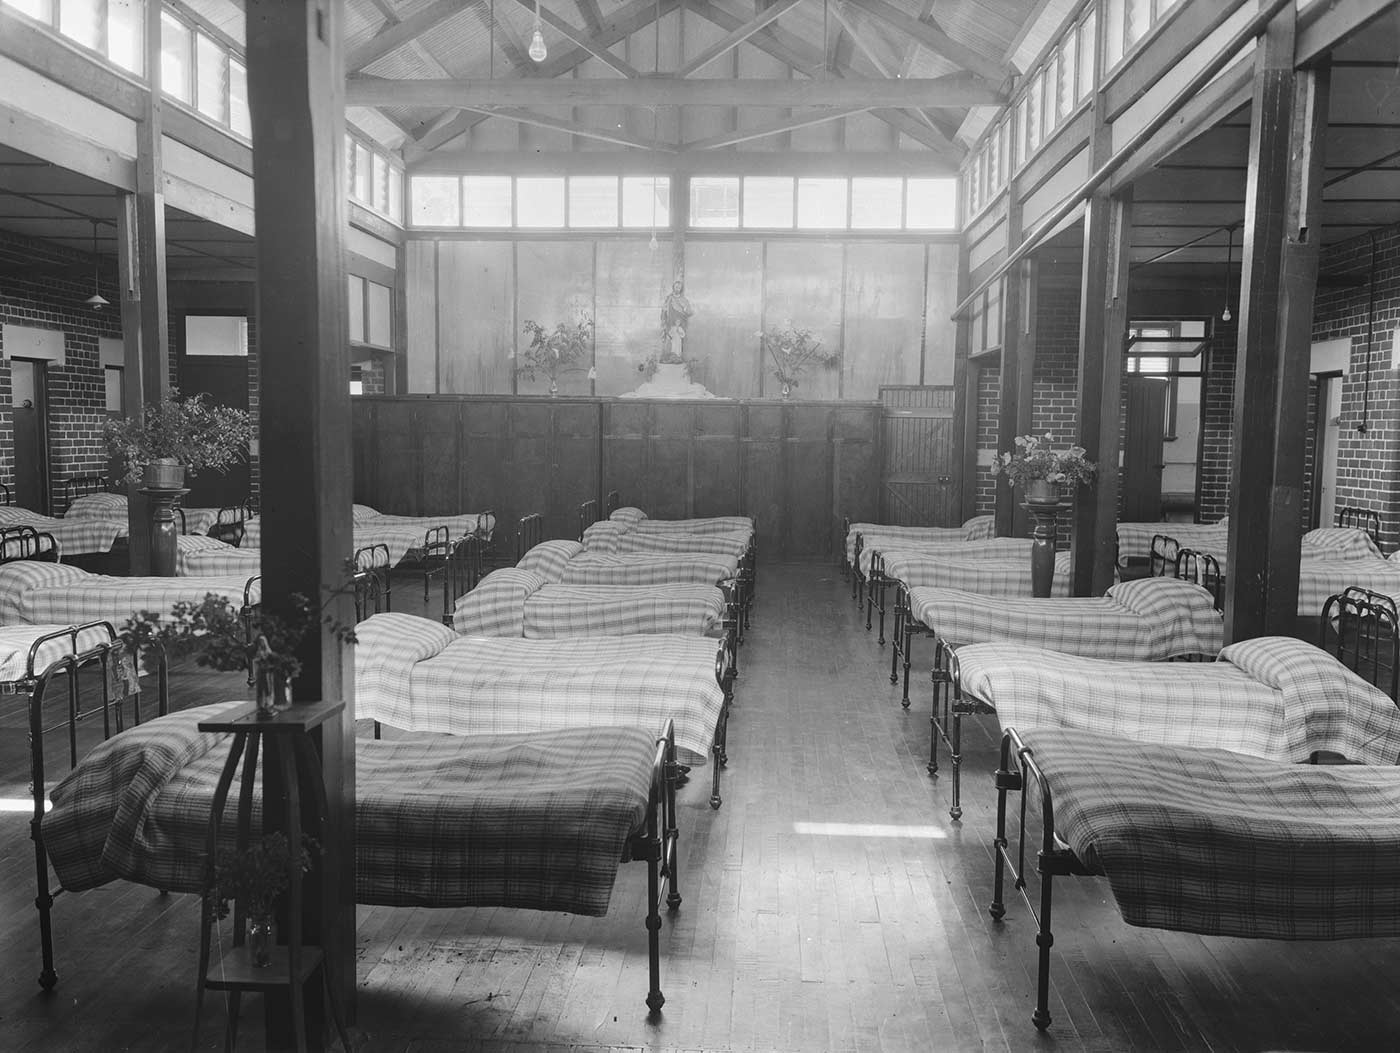 Black and white image showing a large room with high ceilings, filled with five rows of single, metal beds. Each is covered with a checked bedspread. Three small high tables stand in the room, with bases of flowers on top. Another two vases of flowers and  a religious statue sit on top of cupboards at the far end. - click to view larger image